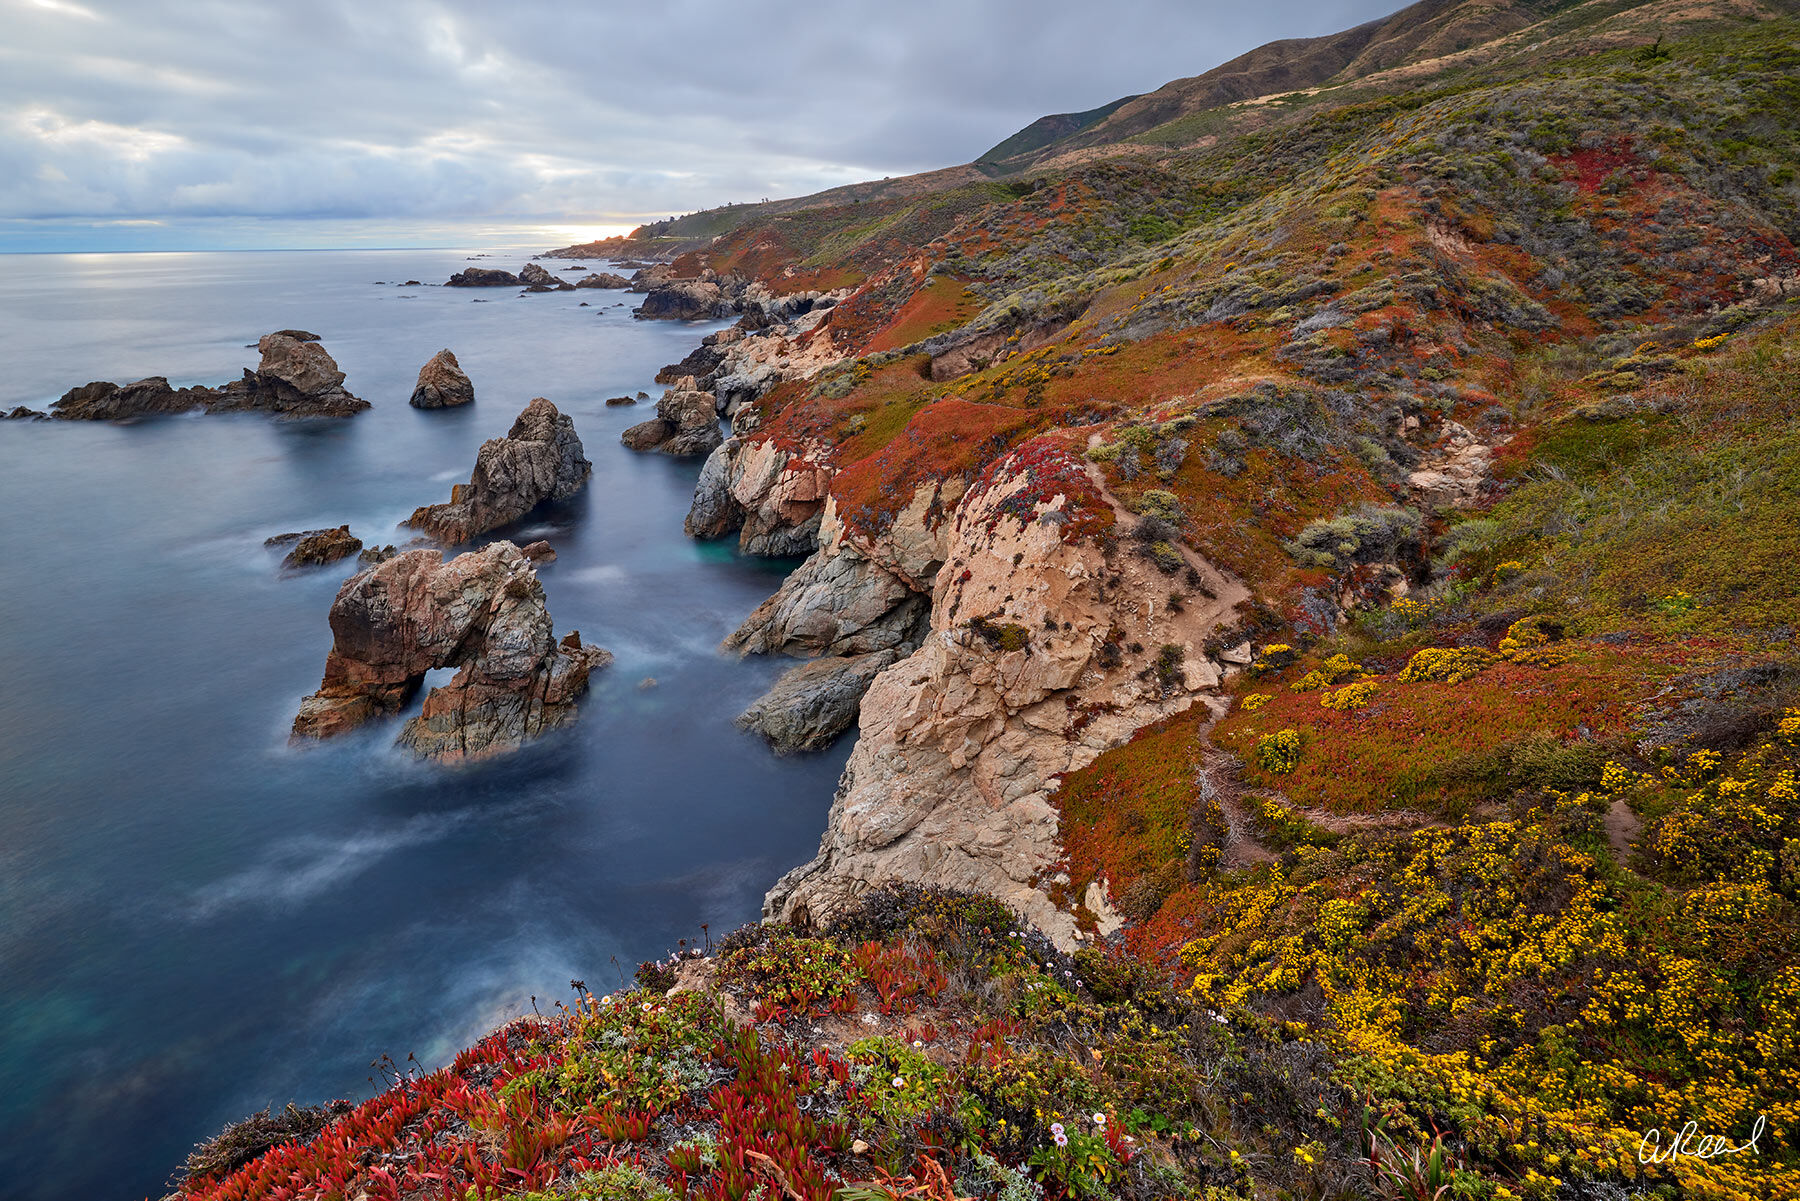 Adorn your walls with Aaron Reed's limited edition photography print, California Color, from his Oceans & Rivers Luxury Art collection...